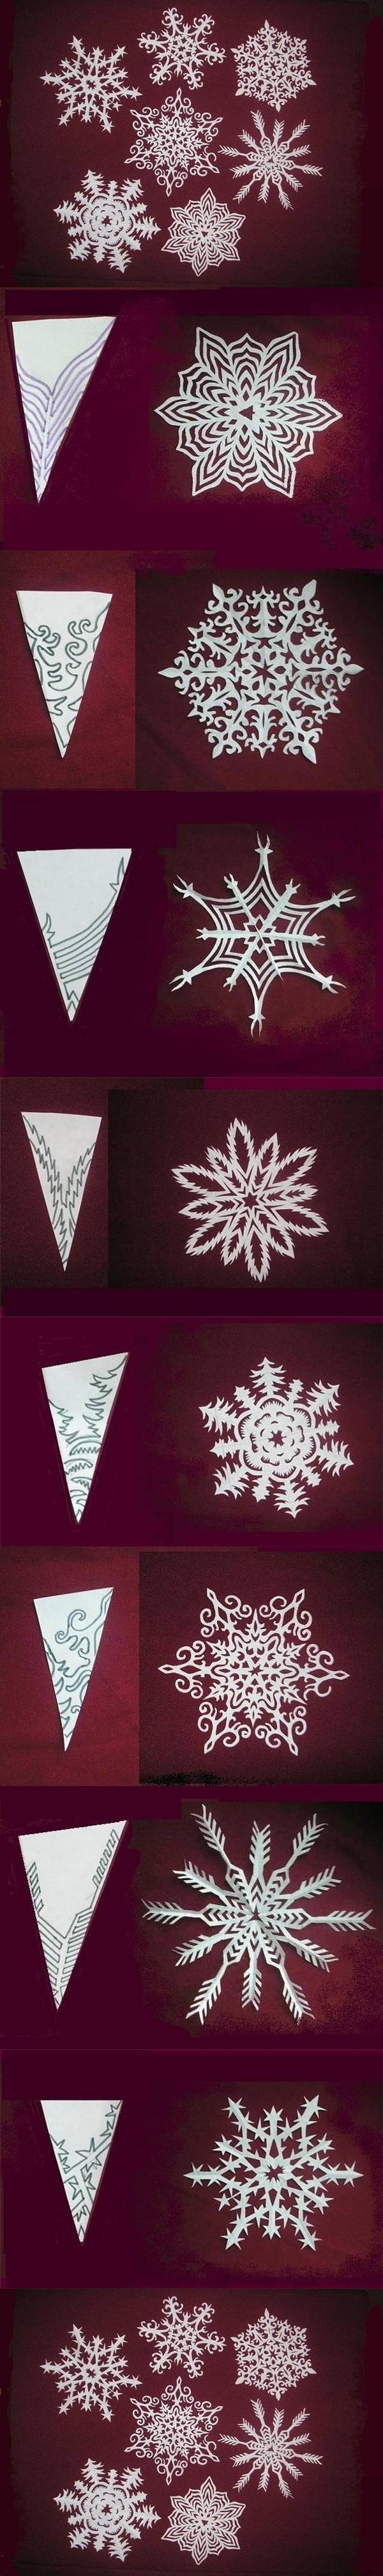 How to make beautiful snowflakes paper craft diy tutorial for Diy paper crafts tutorials